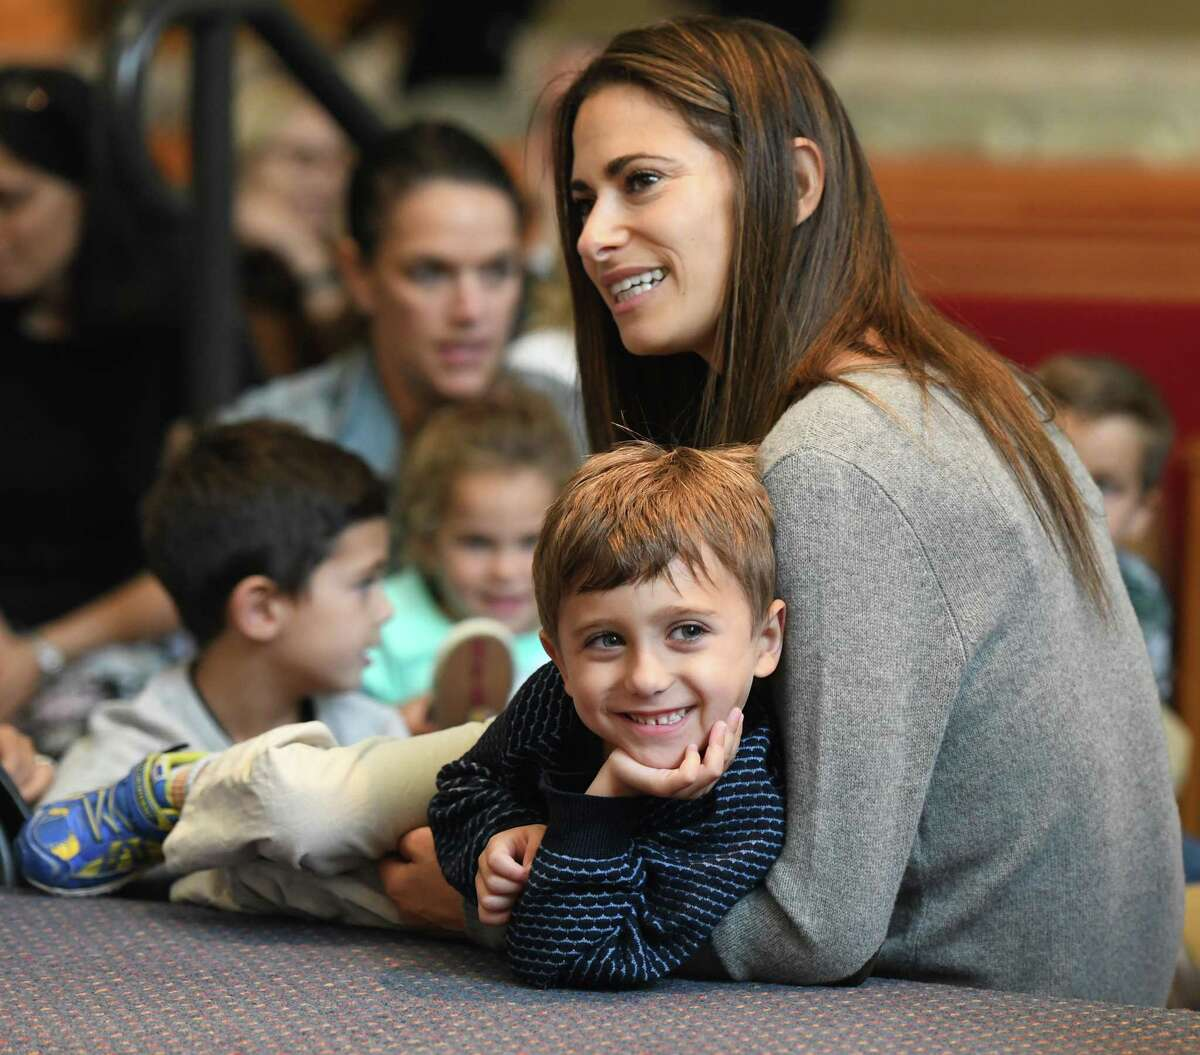 Greenwich's Allie Speiser and her son Leo, 4, listen to music during the Tot Rosh Hashanah service at Temple Sholom in Greenwich, Conn. Monday, Sept. 30, 2019. The program led by musical guest Sheldon Low and Rabbi Chaya Bender featured many fun singalongs for young children and their parents to celebrate the Jewish New Year.